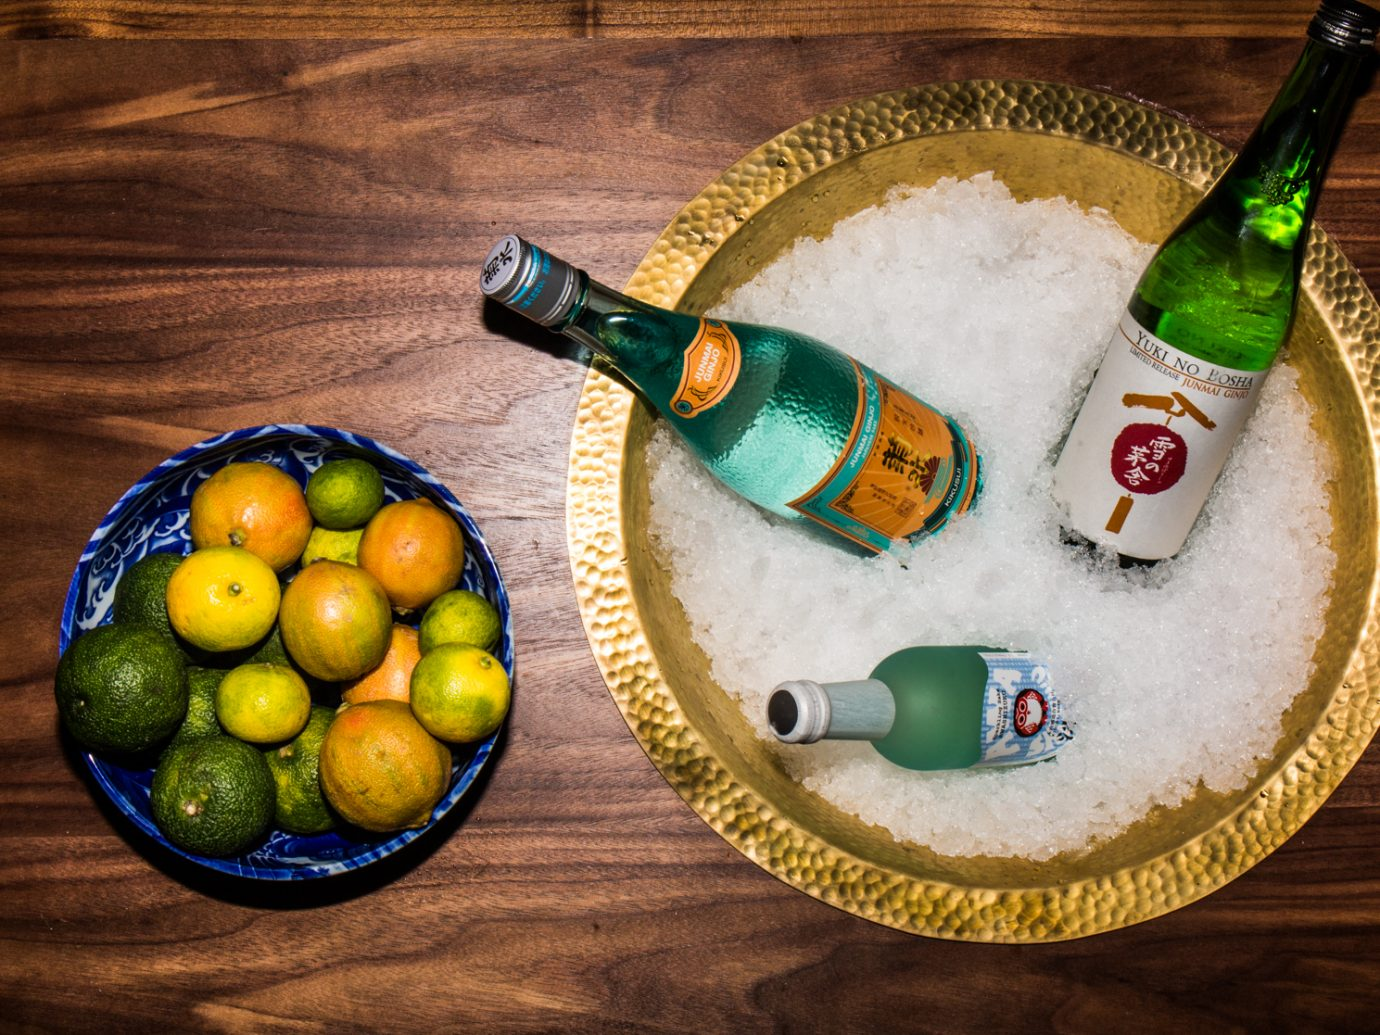 Asian bottles on ice next to limes and lemons